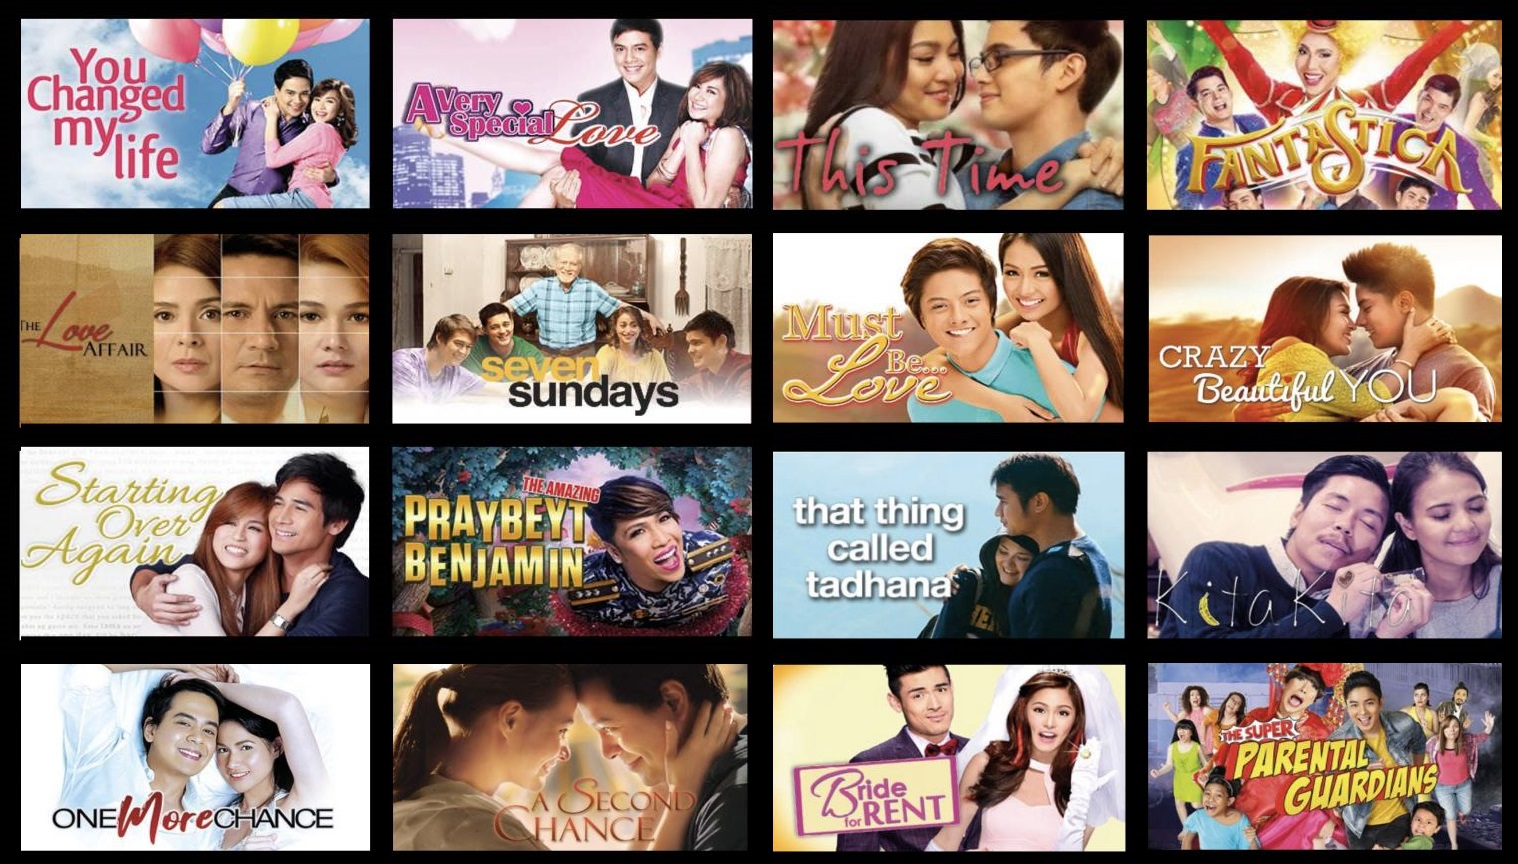 iWant offers over 1,000 free movies to Pinoys at home